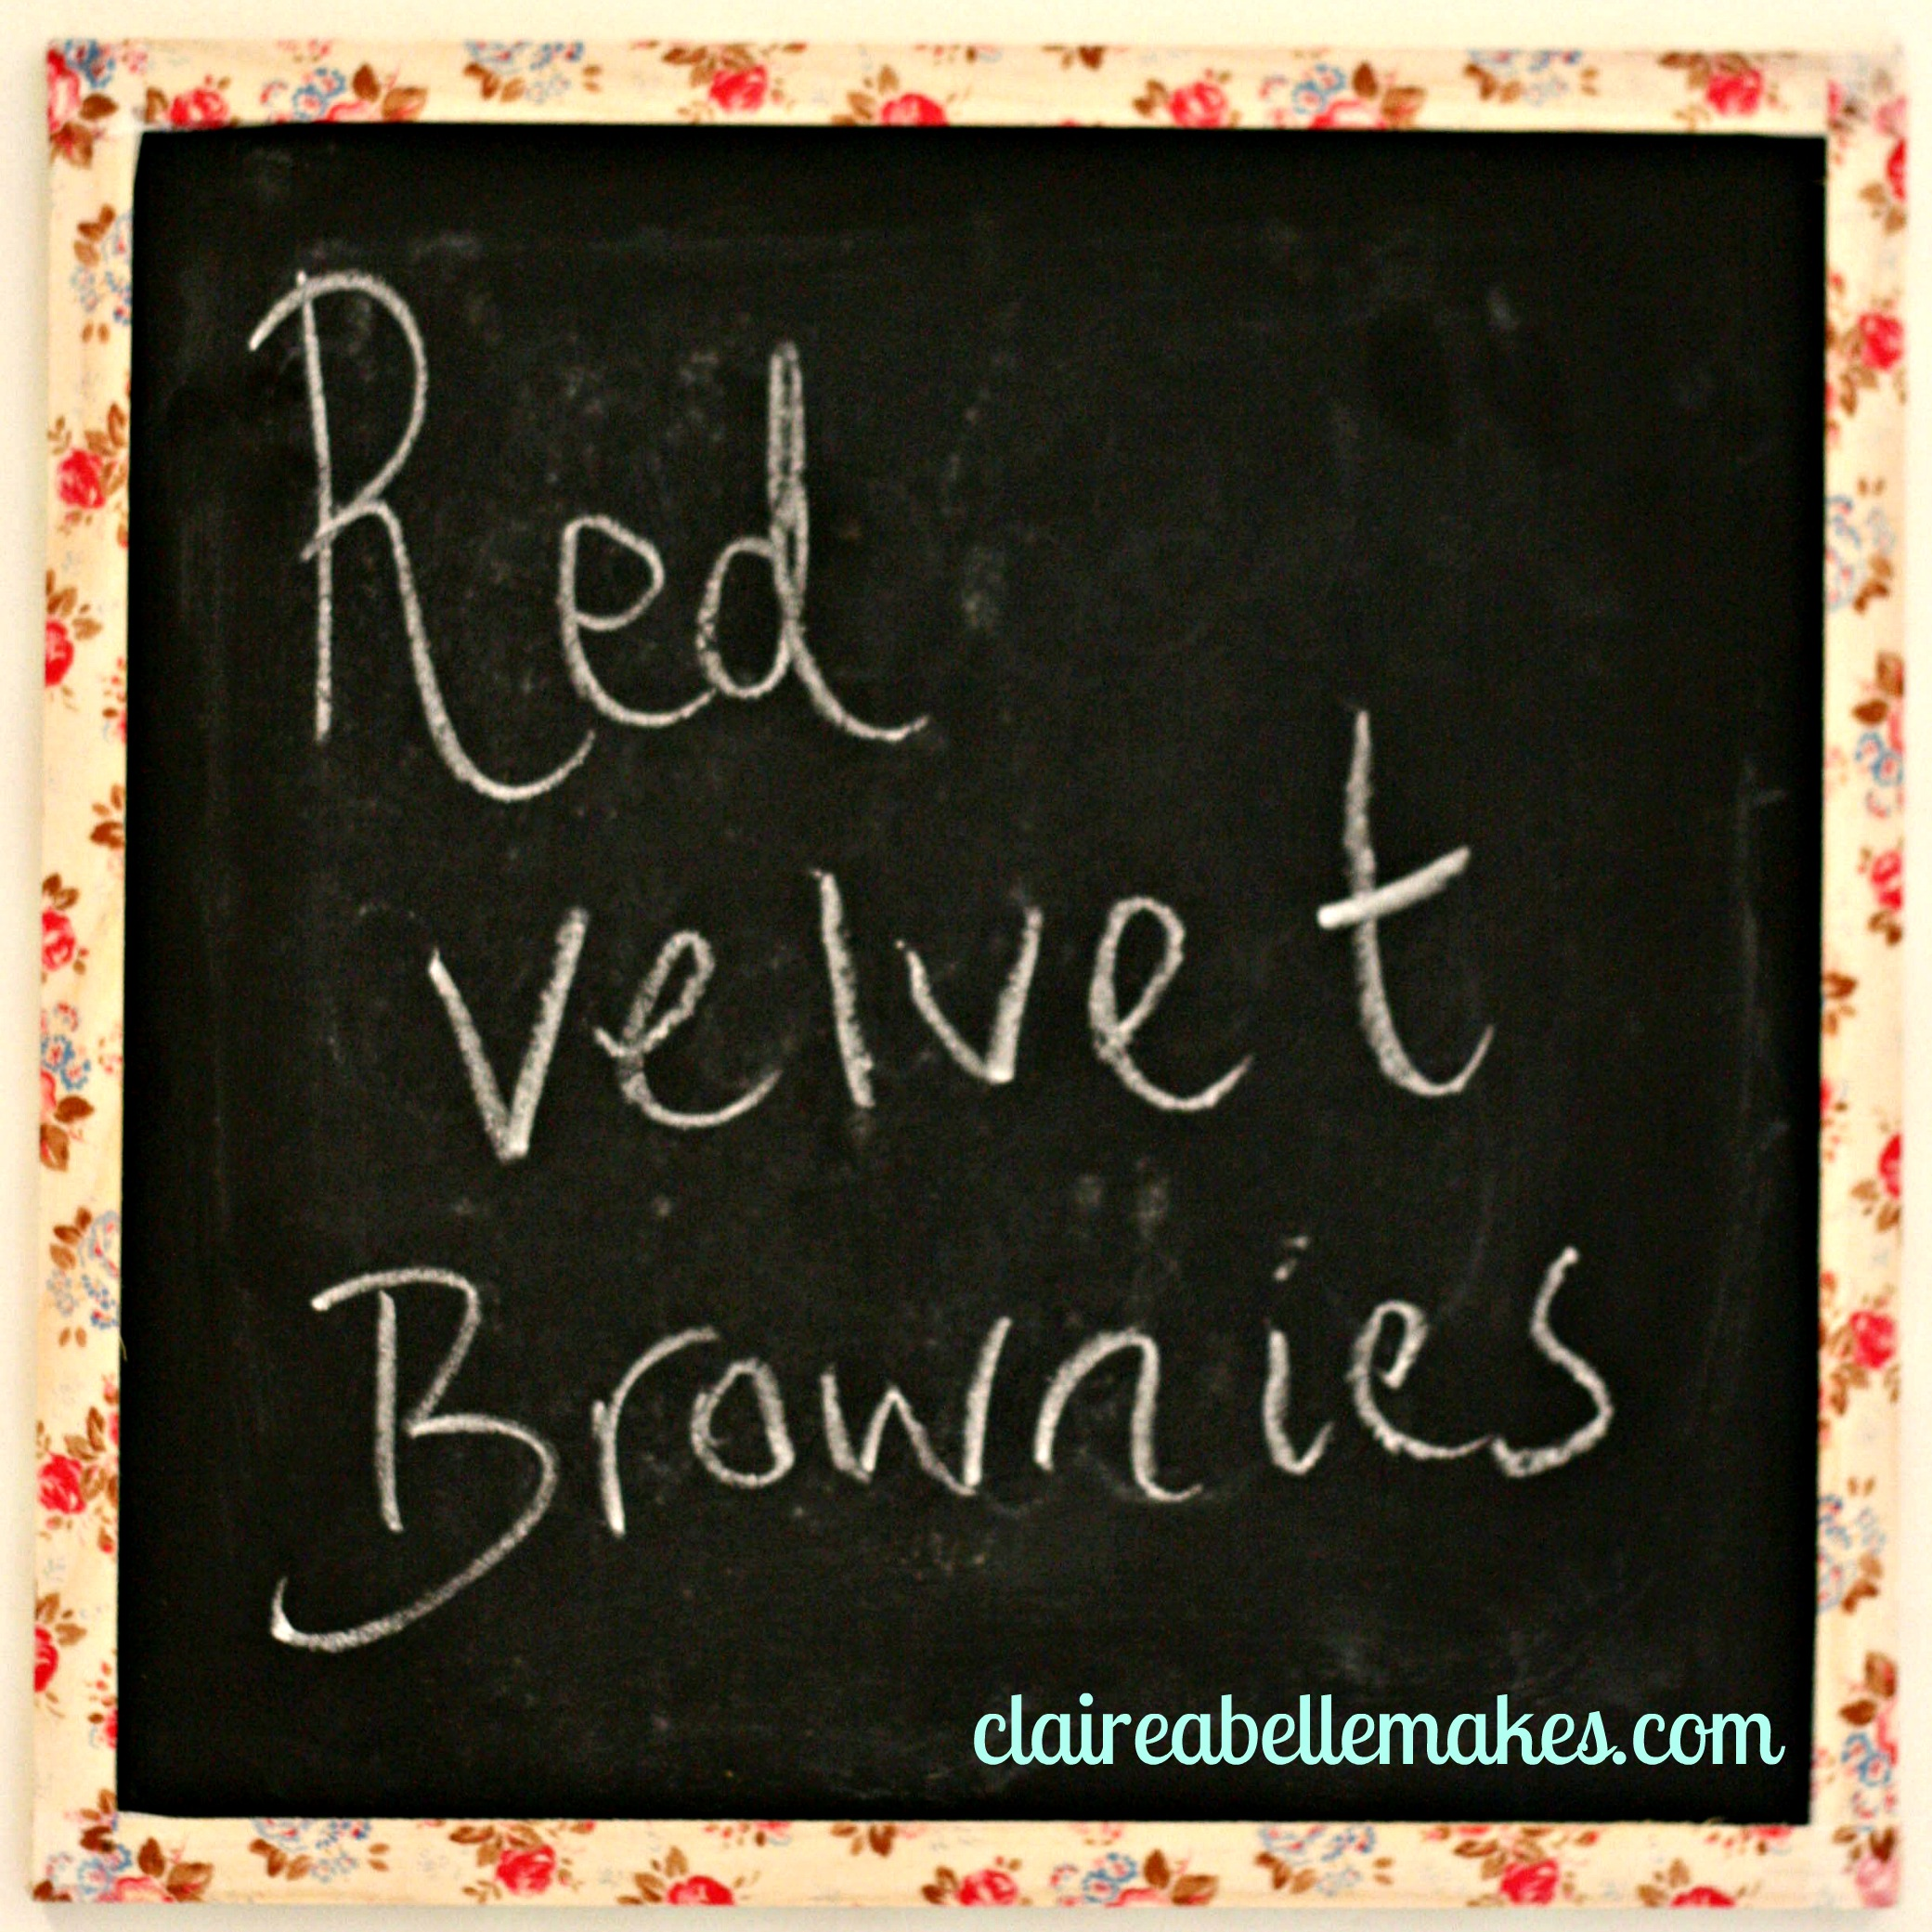 Red Velvet brownies